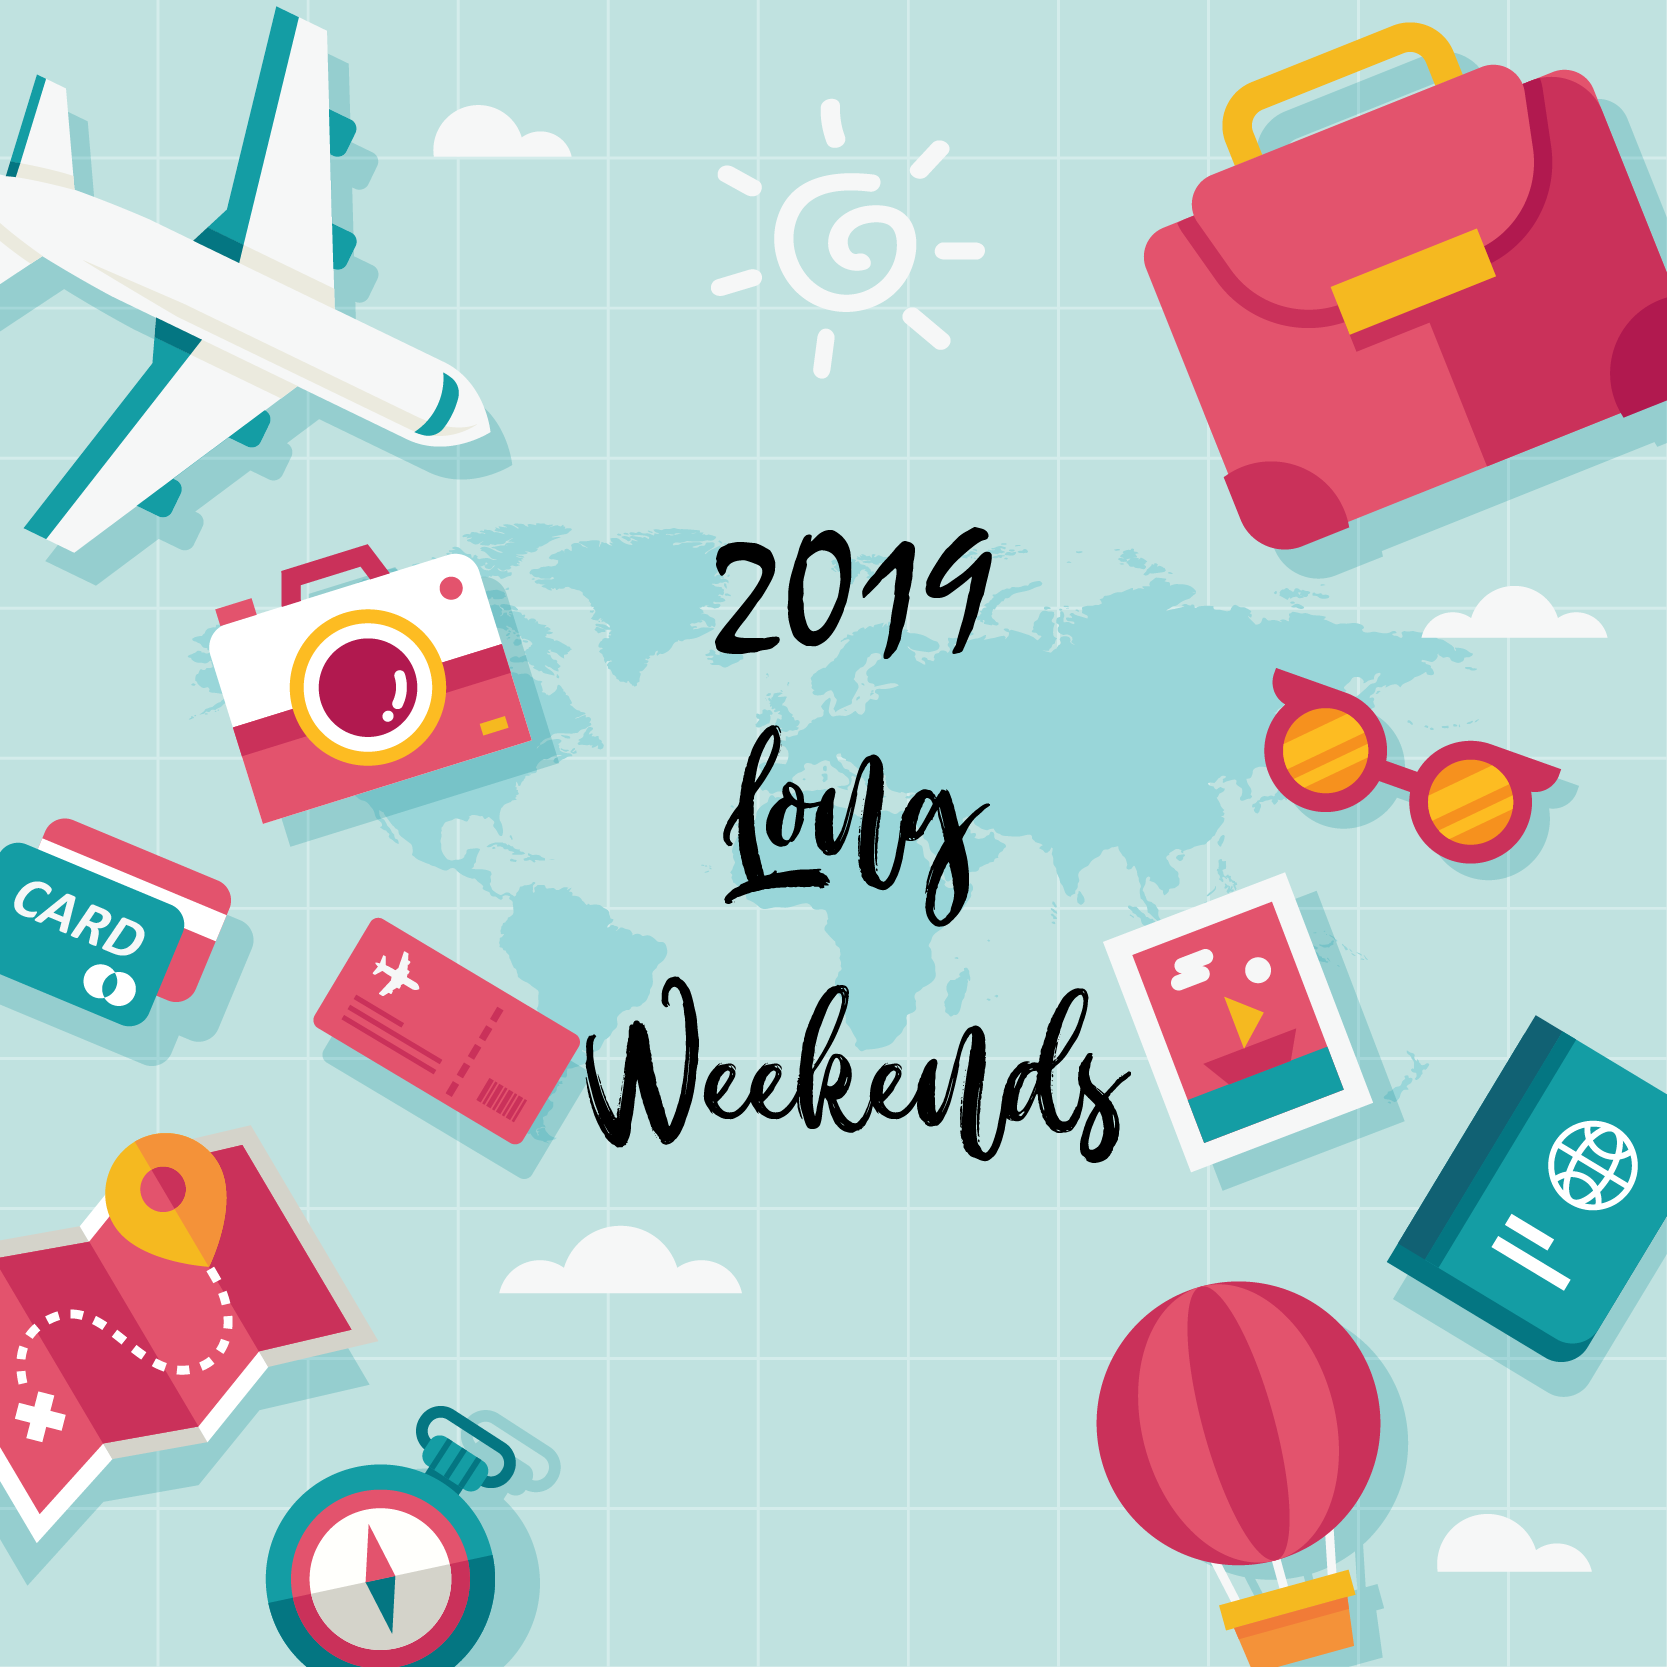 Long weekends in 2019 – Time for a trip!